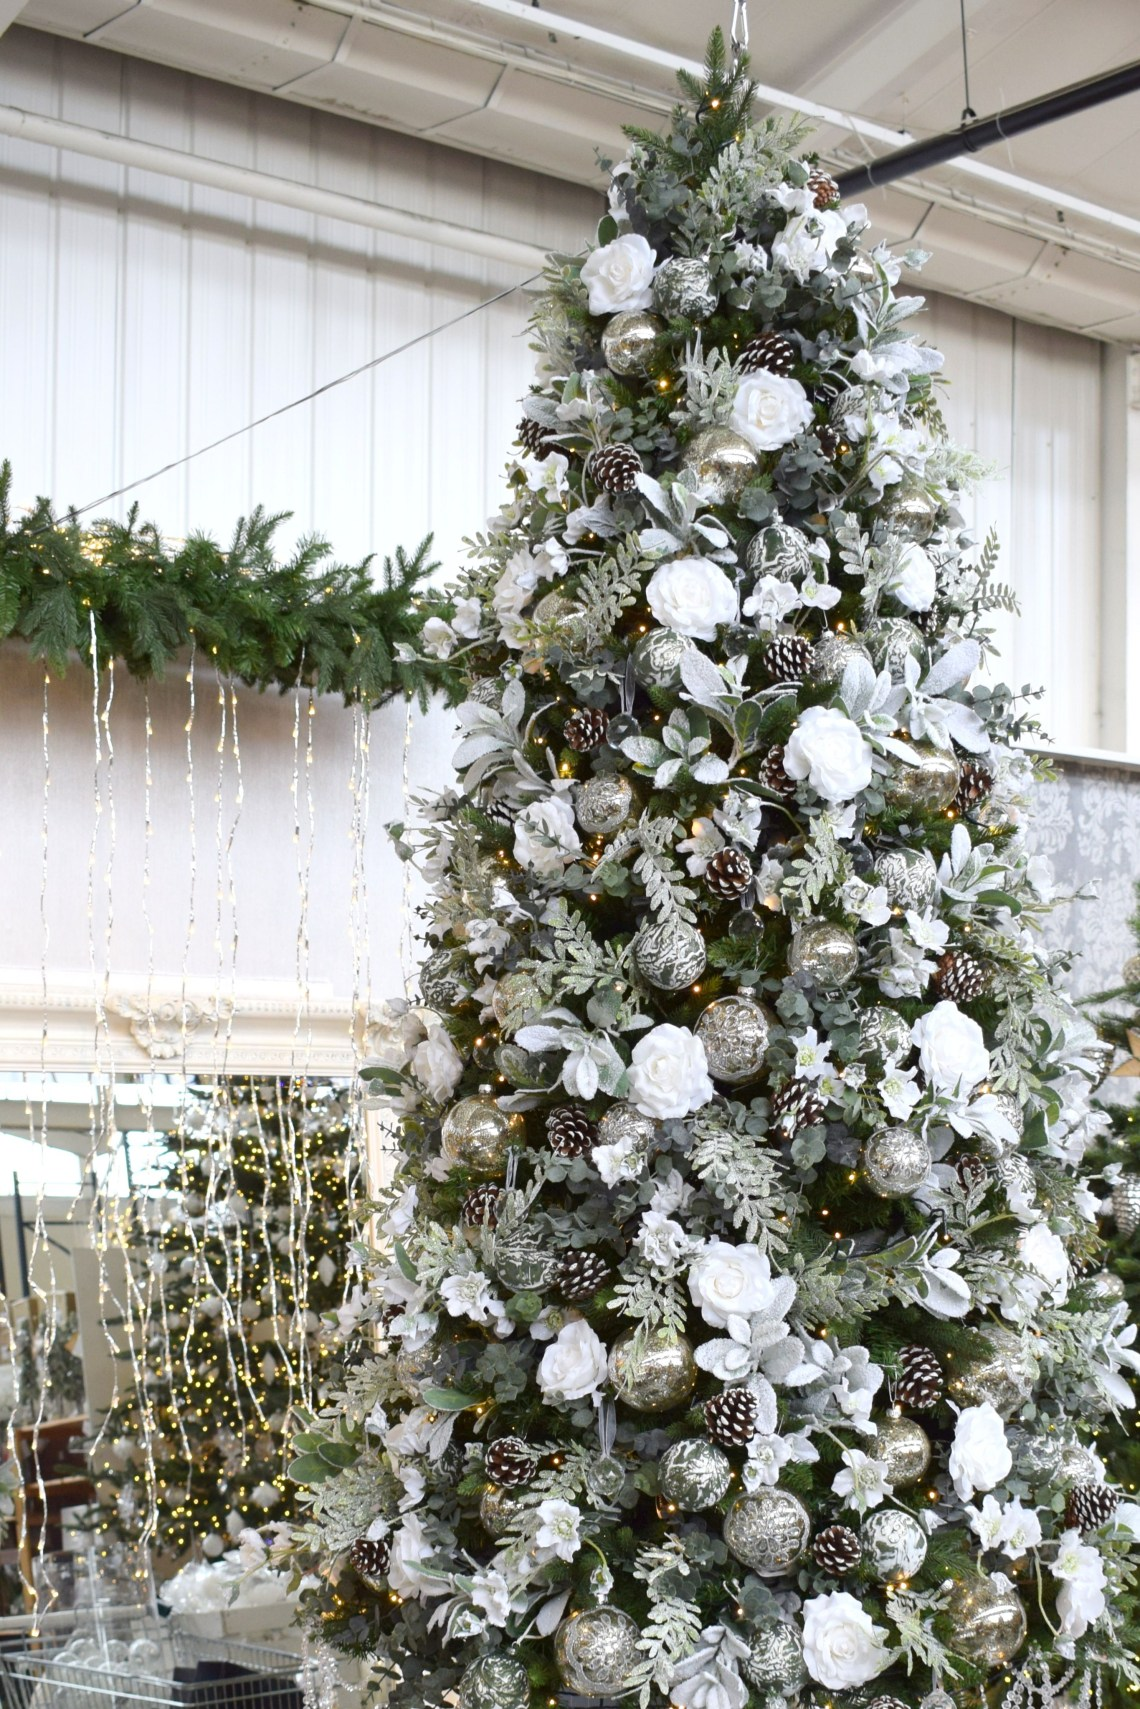 Artificial Frosted Christmas Tree Decorated With White